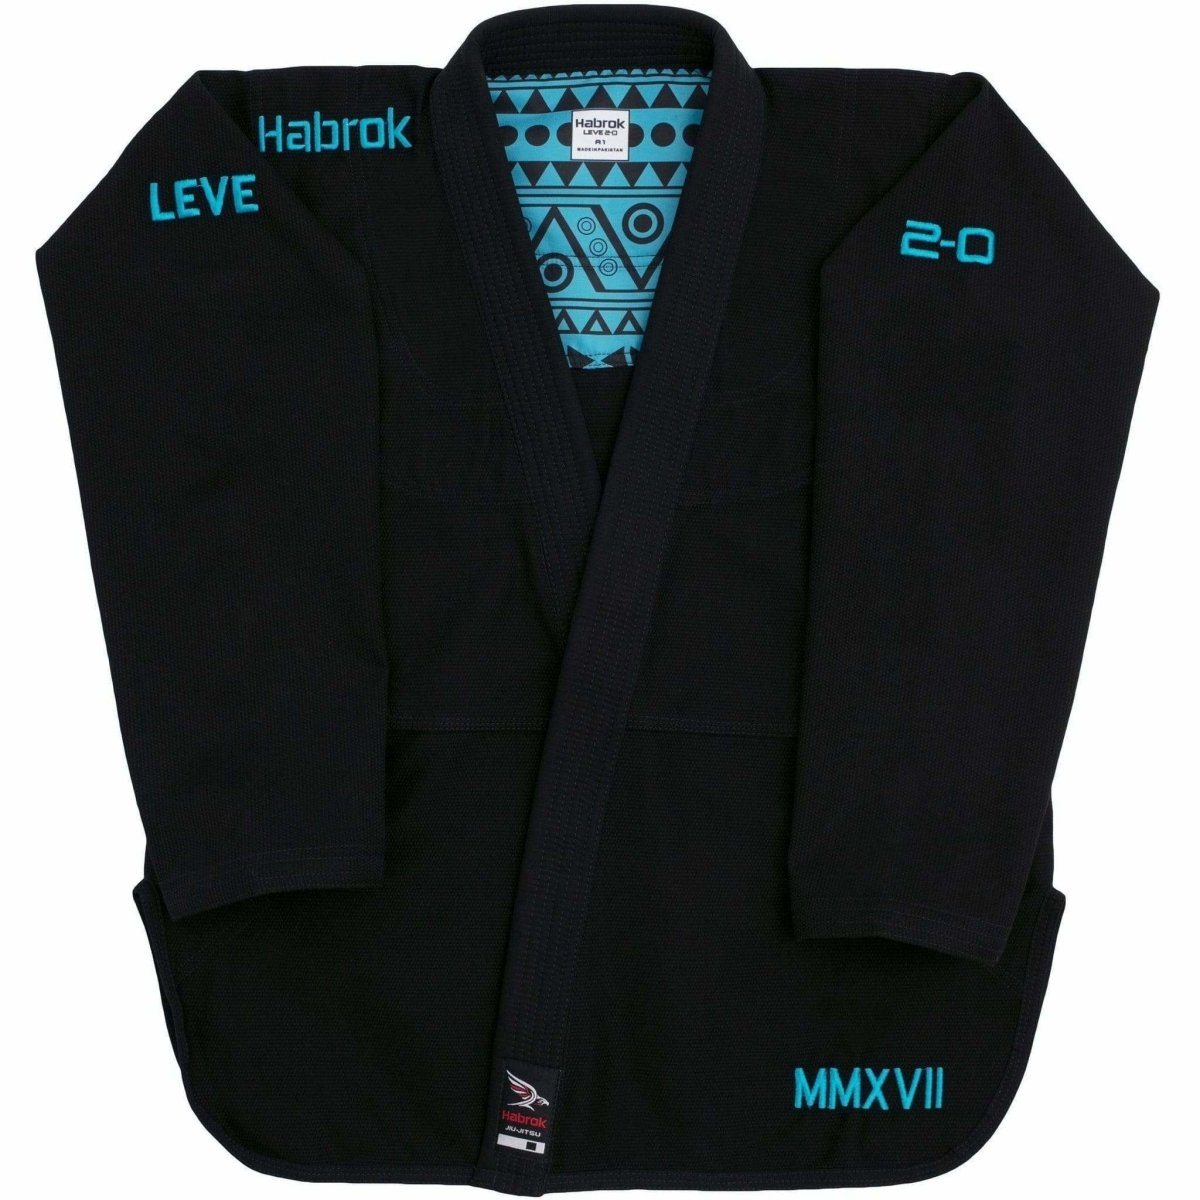 Habrok Jiu Jitsu Gi A00 / BLACK Leve 2.0 | BJJ GI Men | Premium Ultra Light Weight  | JIU JITSU